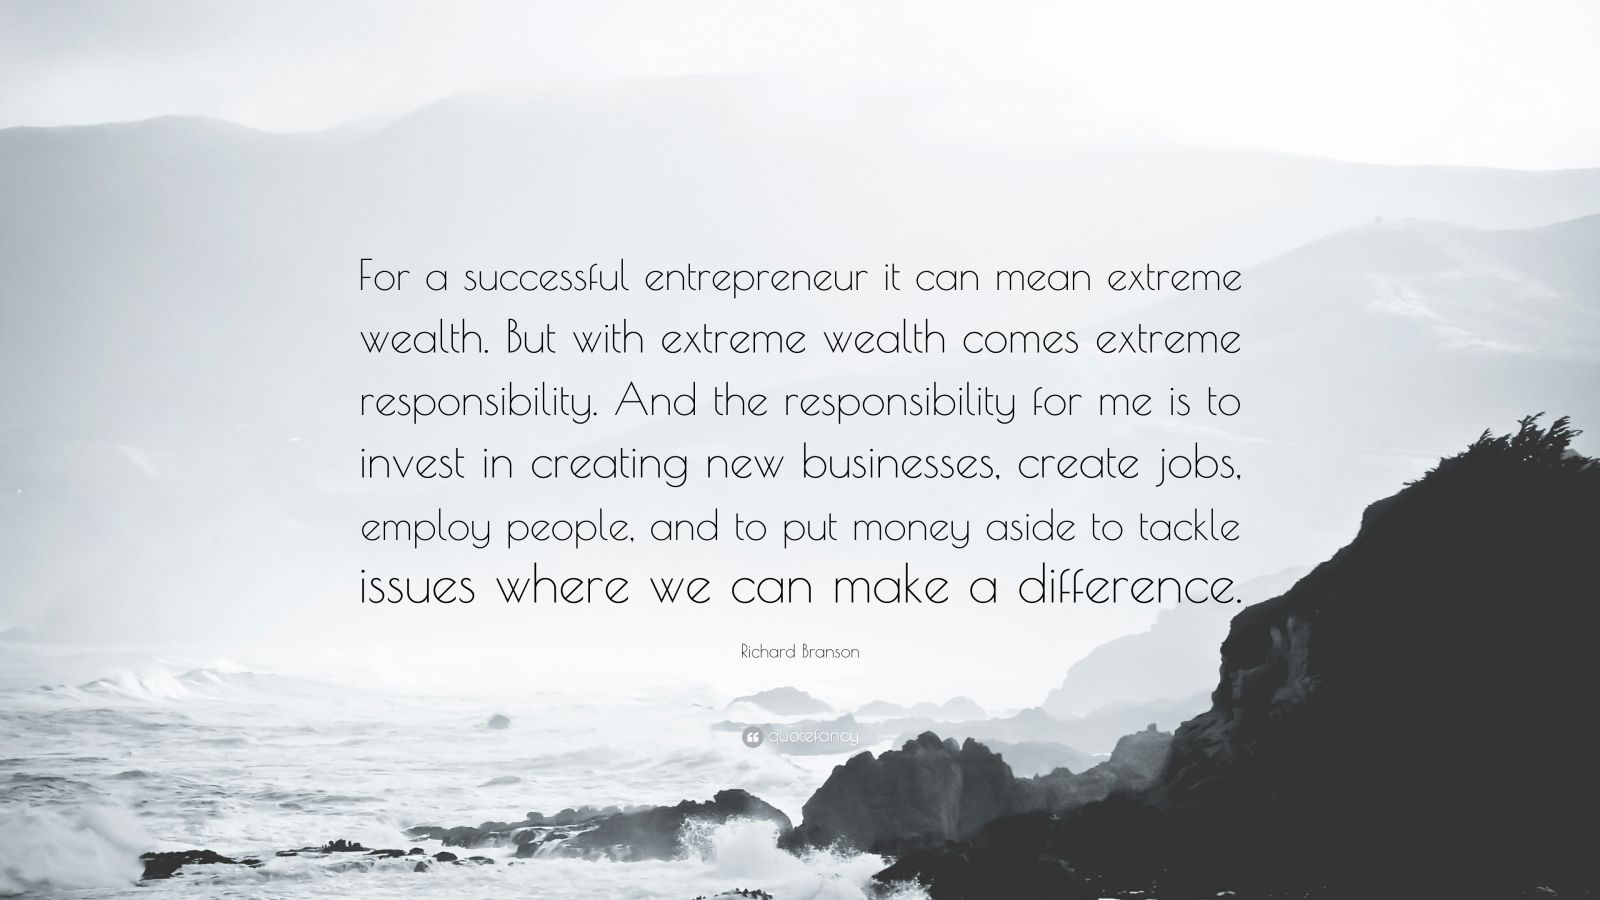 "Richard Branson Quote: ""For a successful entrepreneur it can mean extreme wealth. But with extreme wealth comes extreme responsibility. And the responsibility for me is to invest in creating new businesses, create jobs, employ people, and to put money aside to tackle issues where we can make a difference."""